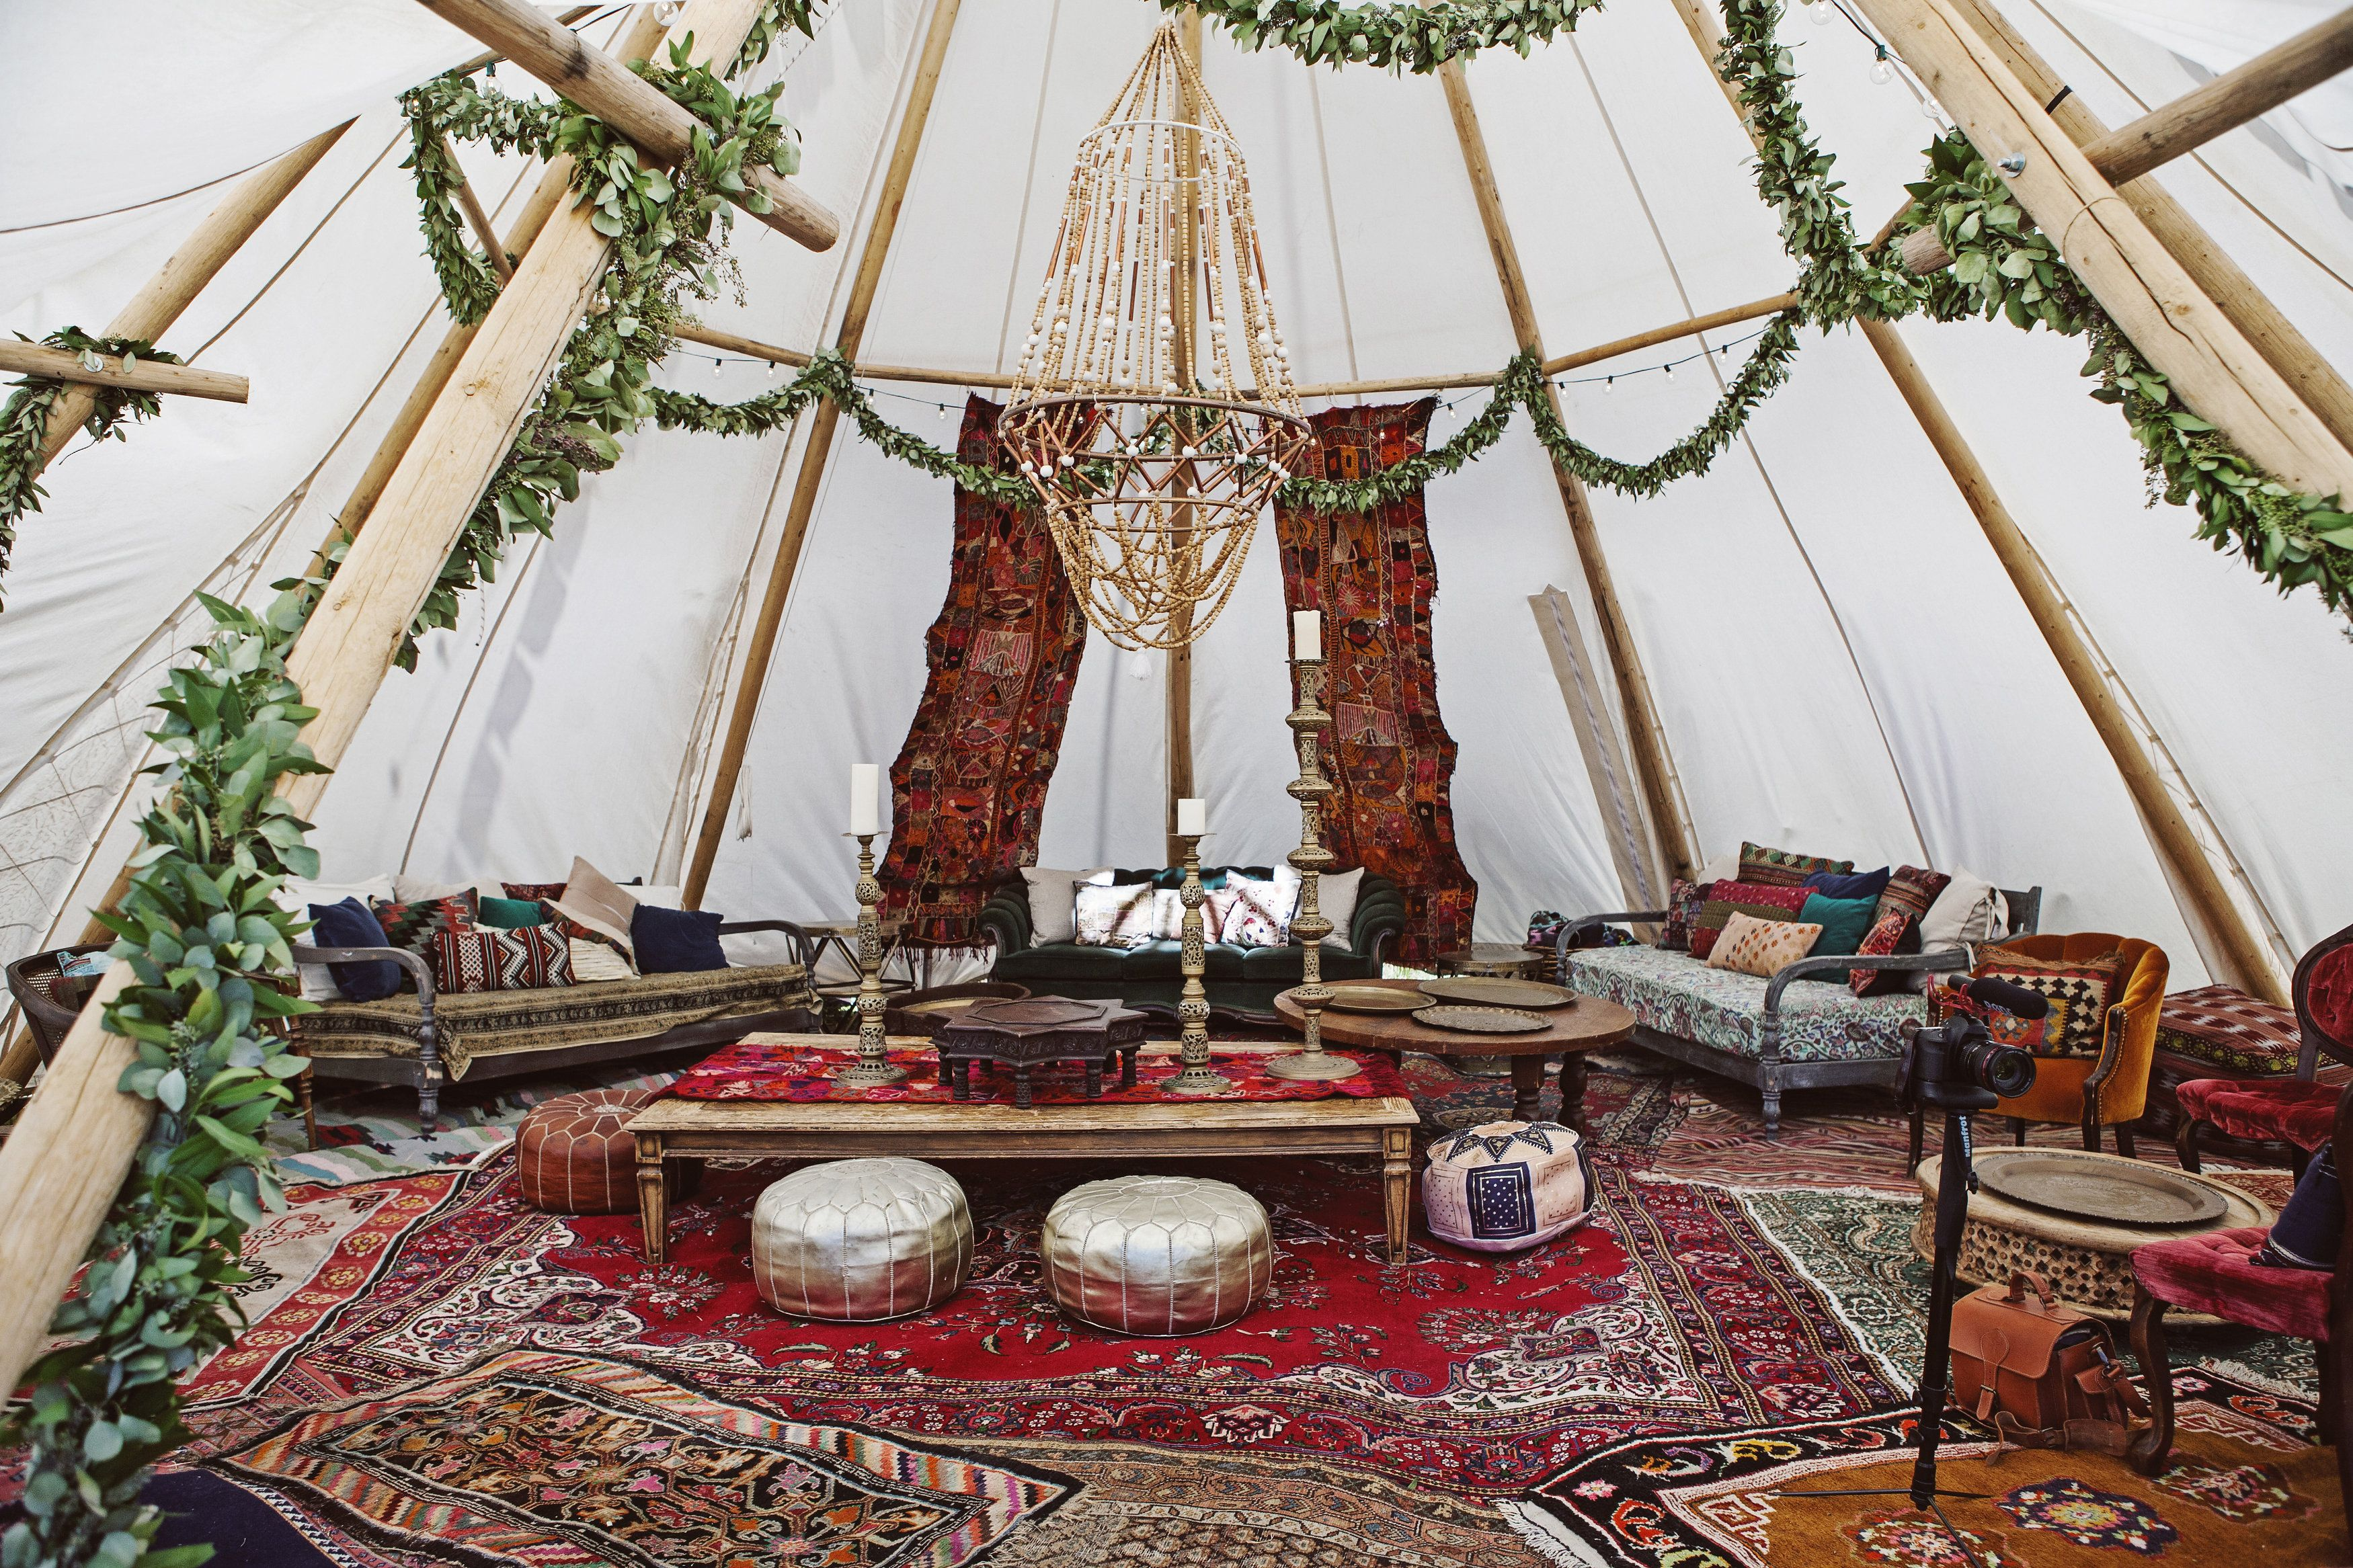 Pakistani Lavish Wedding Decor with Tents and Teepees